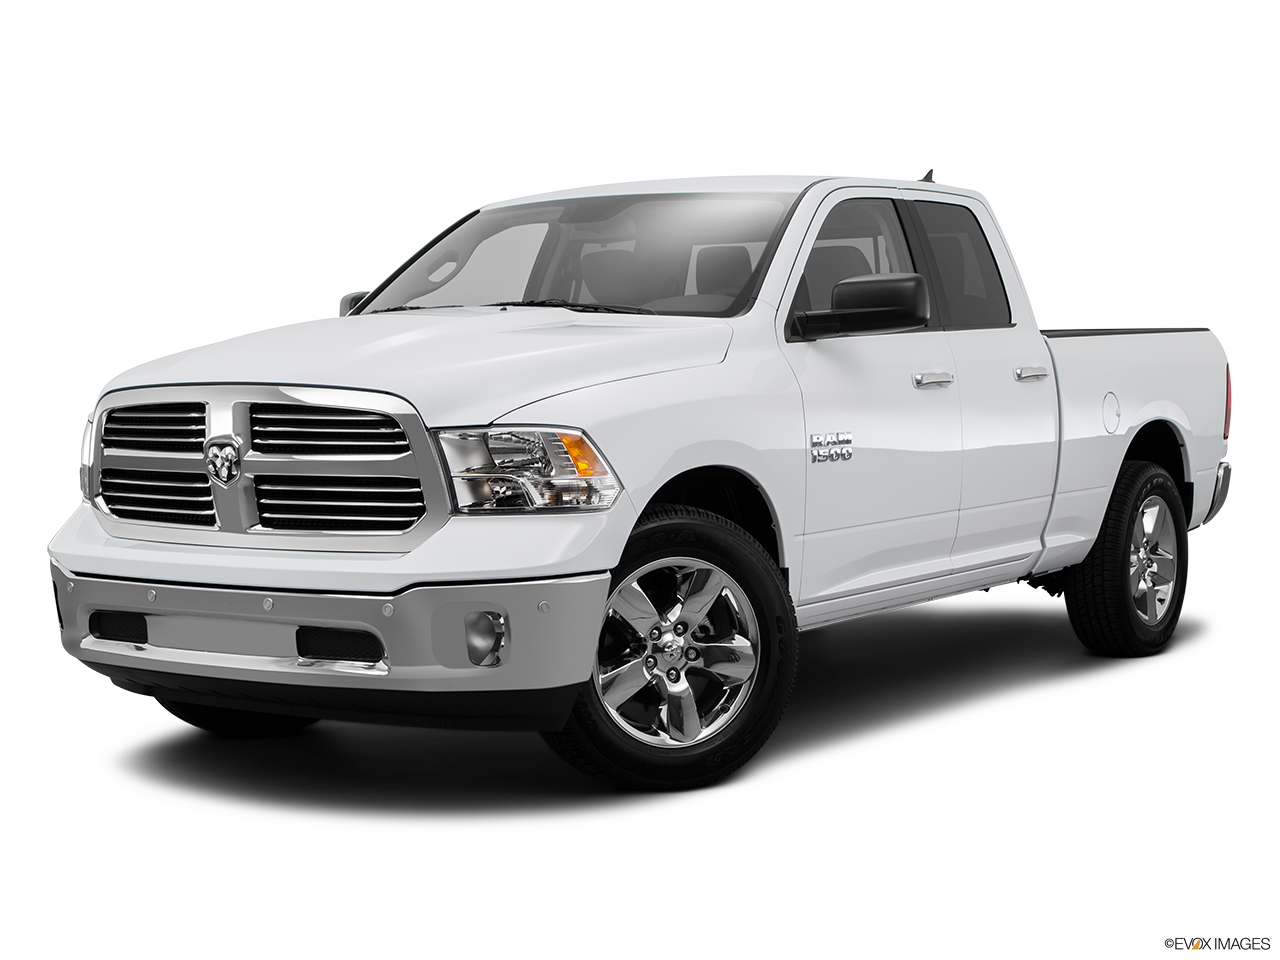 Test Drive A 2015 RAM 1500 at Huntington Beach Chrysler Dodge Jeep Ram in Huntington Beach